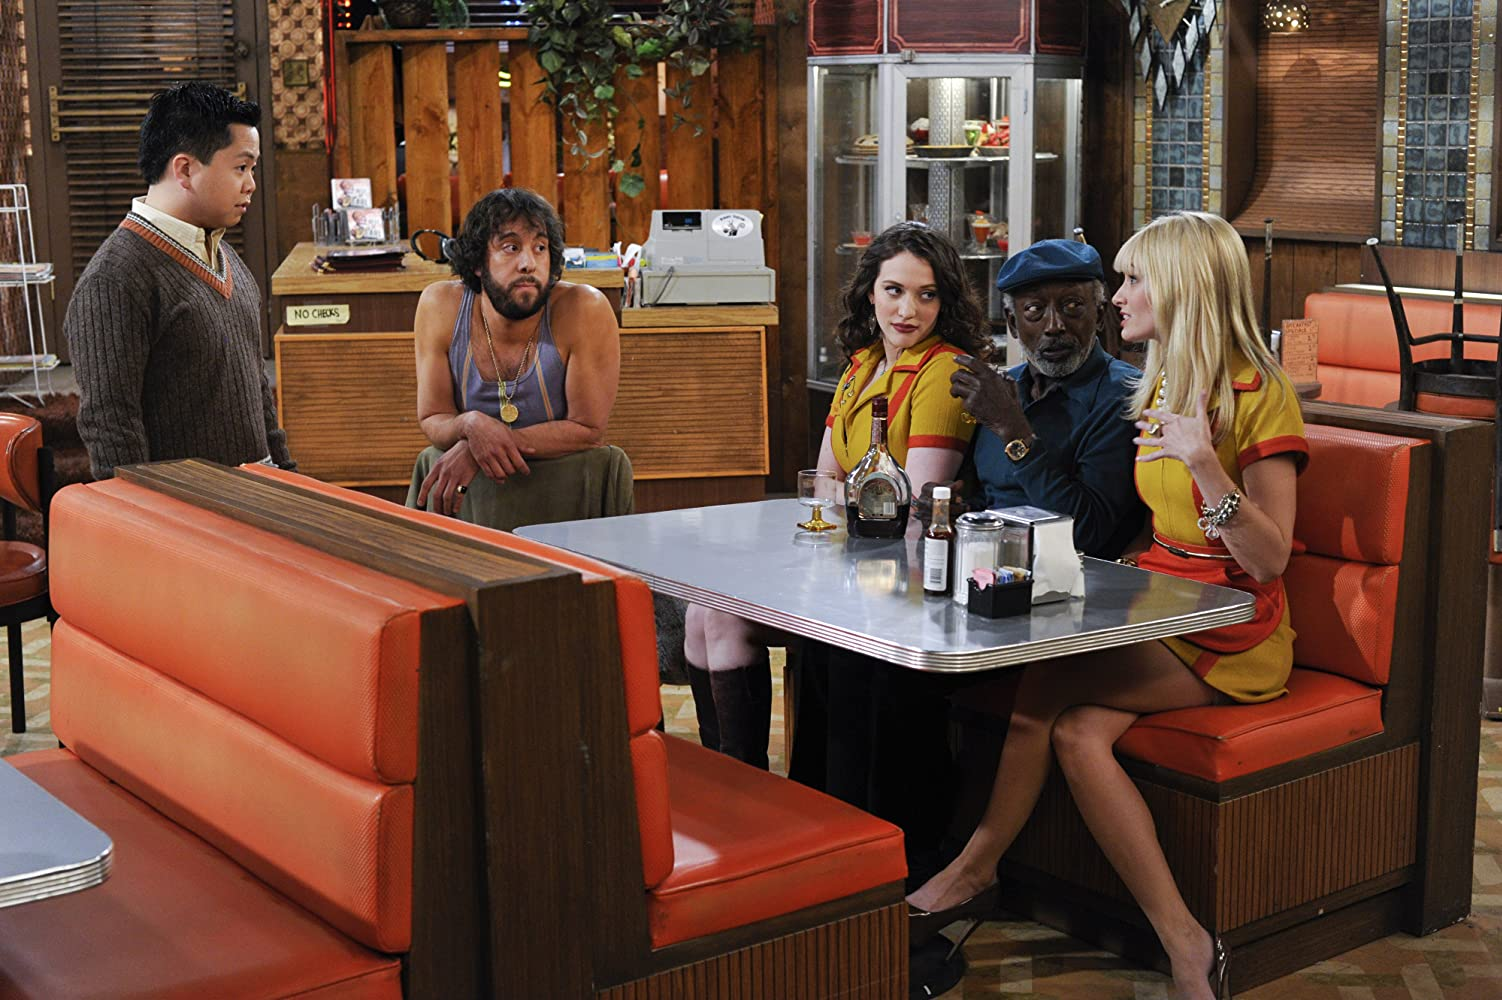 Garrett Morris, Kat Dennings, Jonathan Kite, Matthew Moy, and Beth Behrs in 2 Broke Girls (2011)